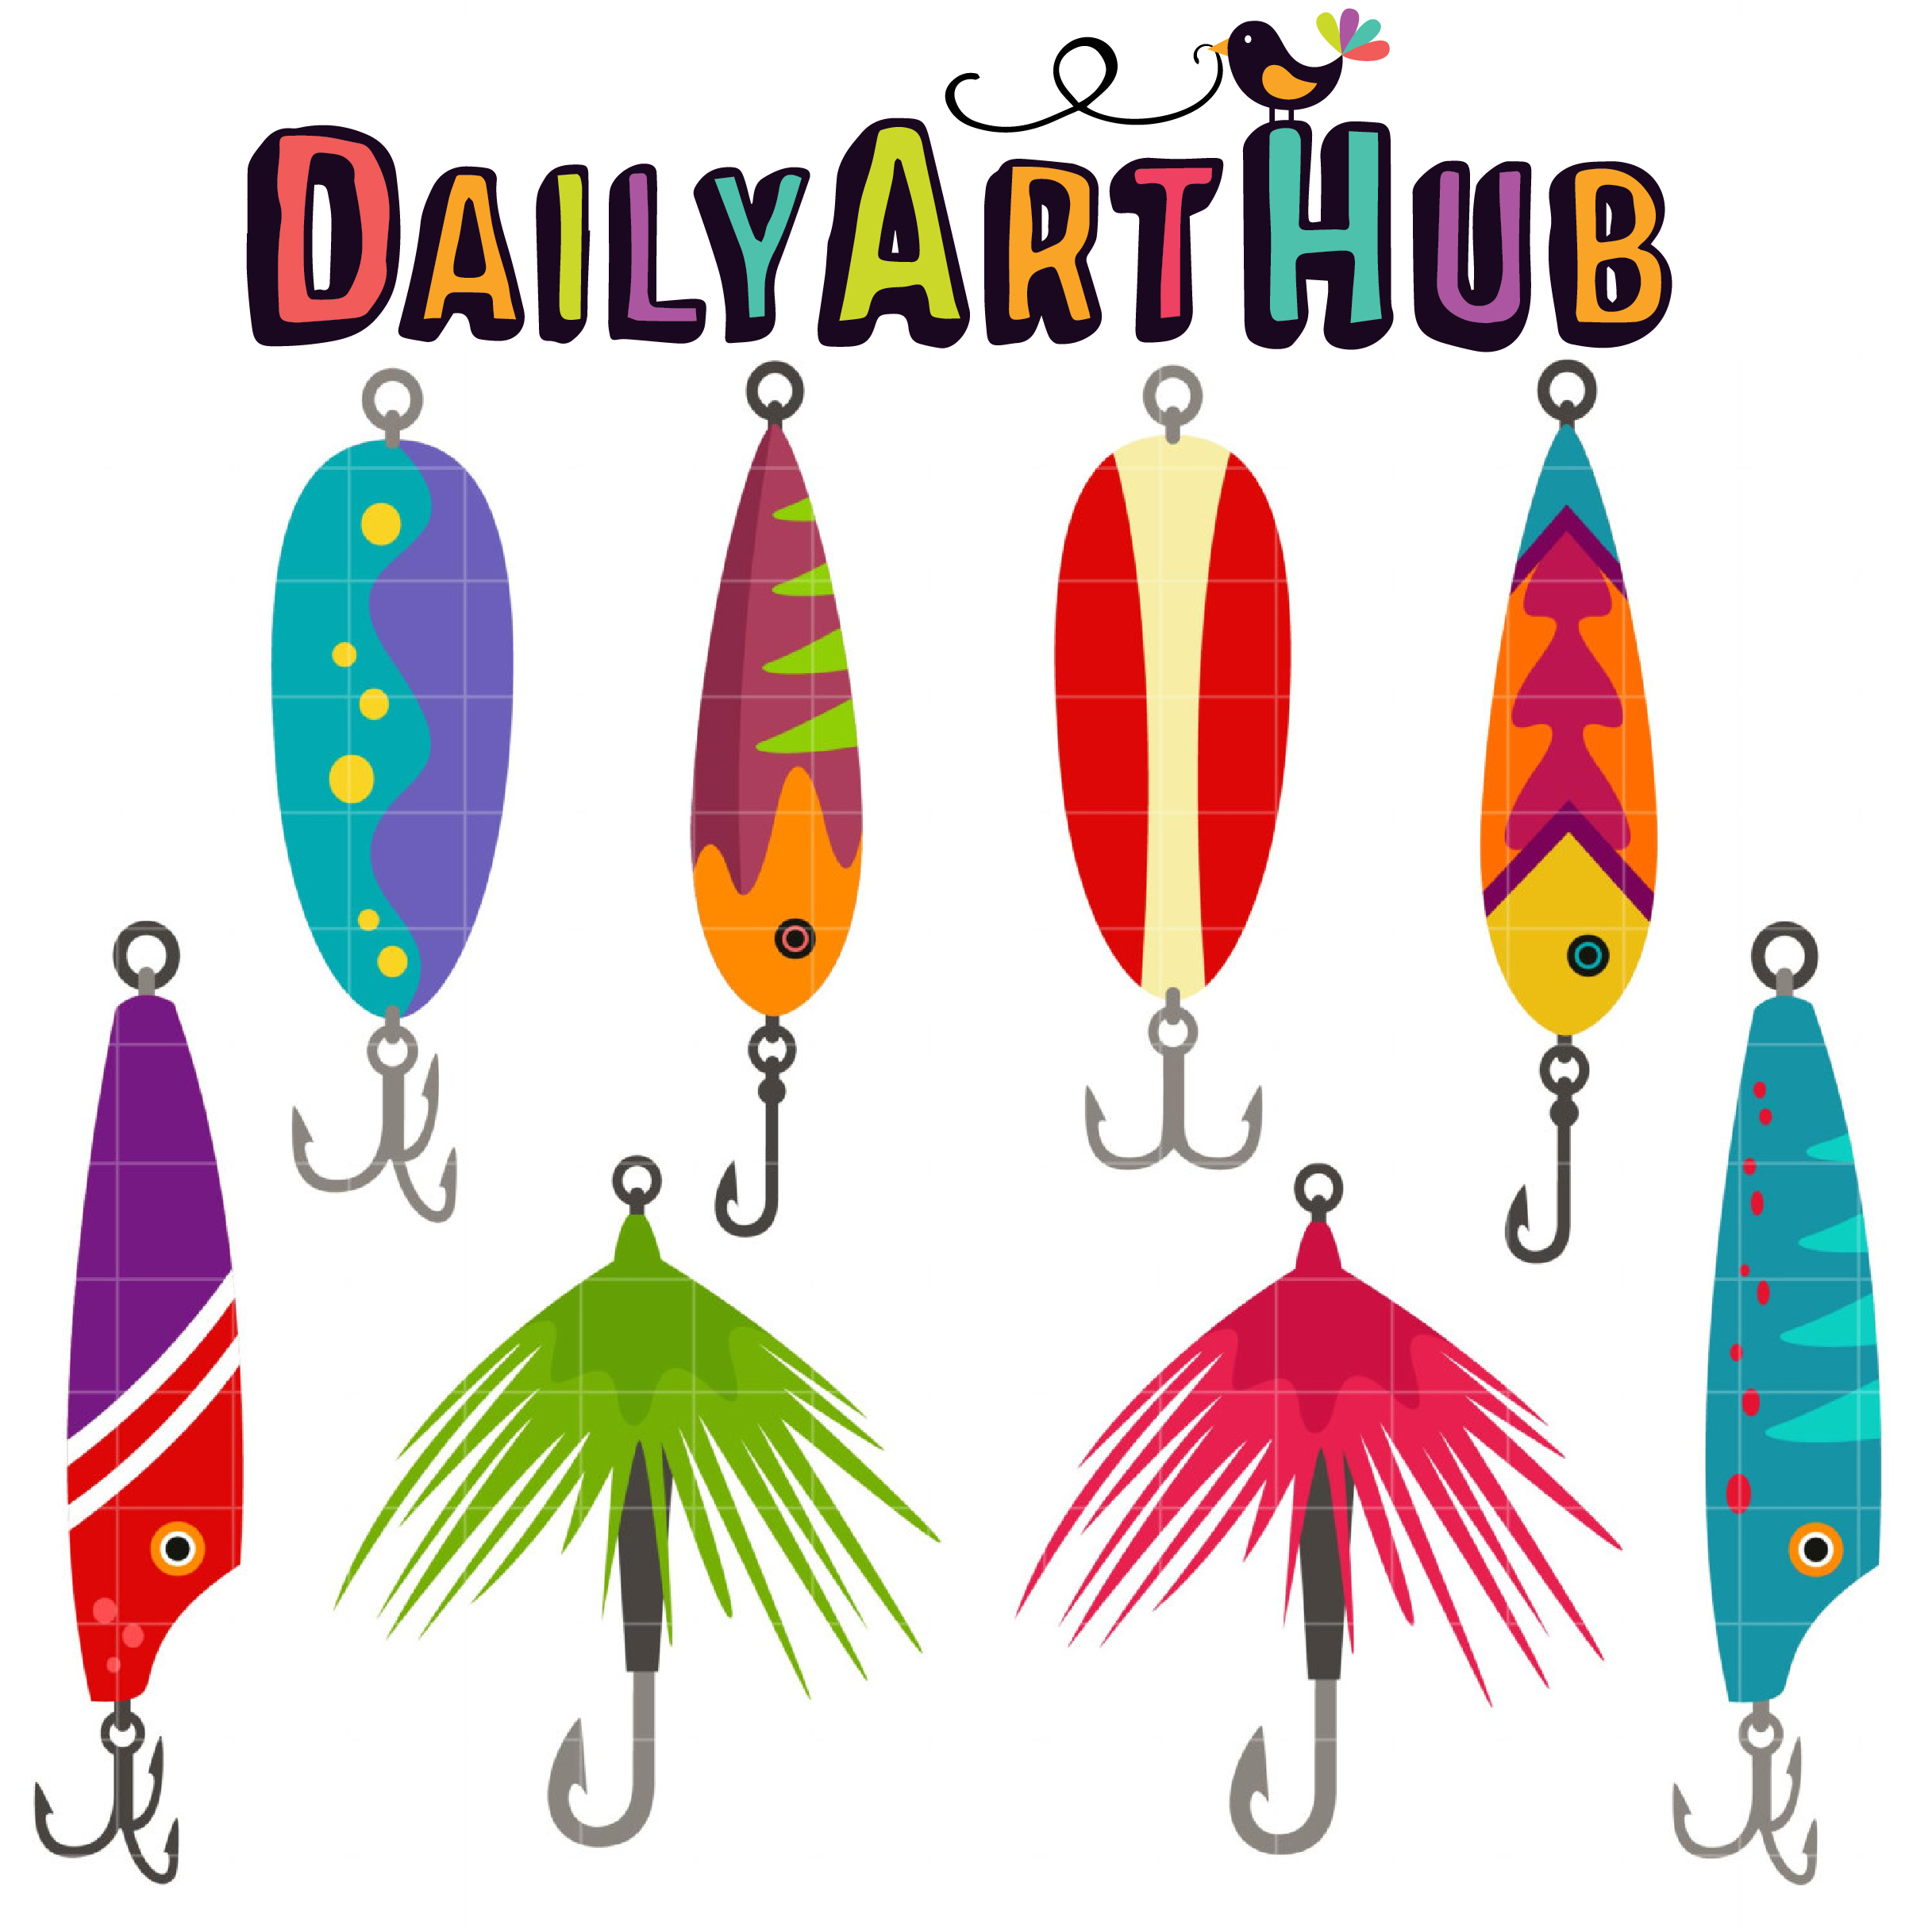 Download Fishing Lures Clip Art Set Daily Art Hub Free Clip Art Everyday